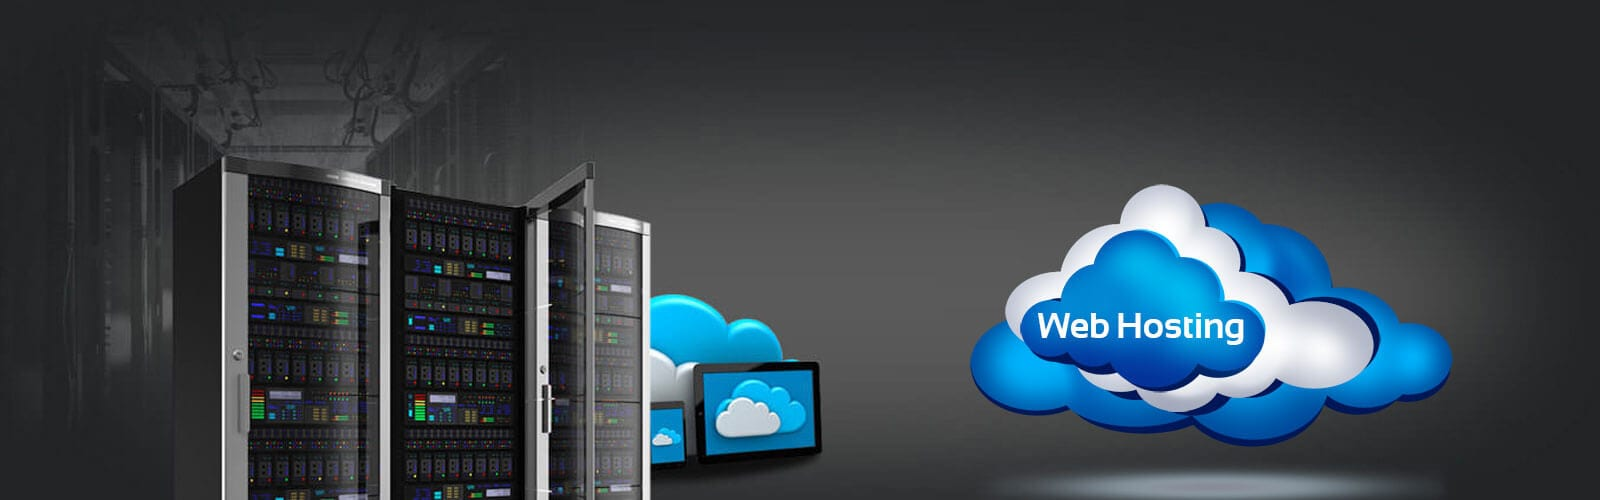 web-hosting-server-location